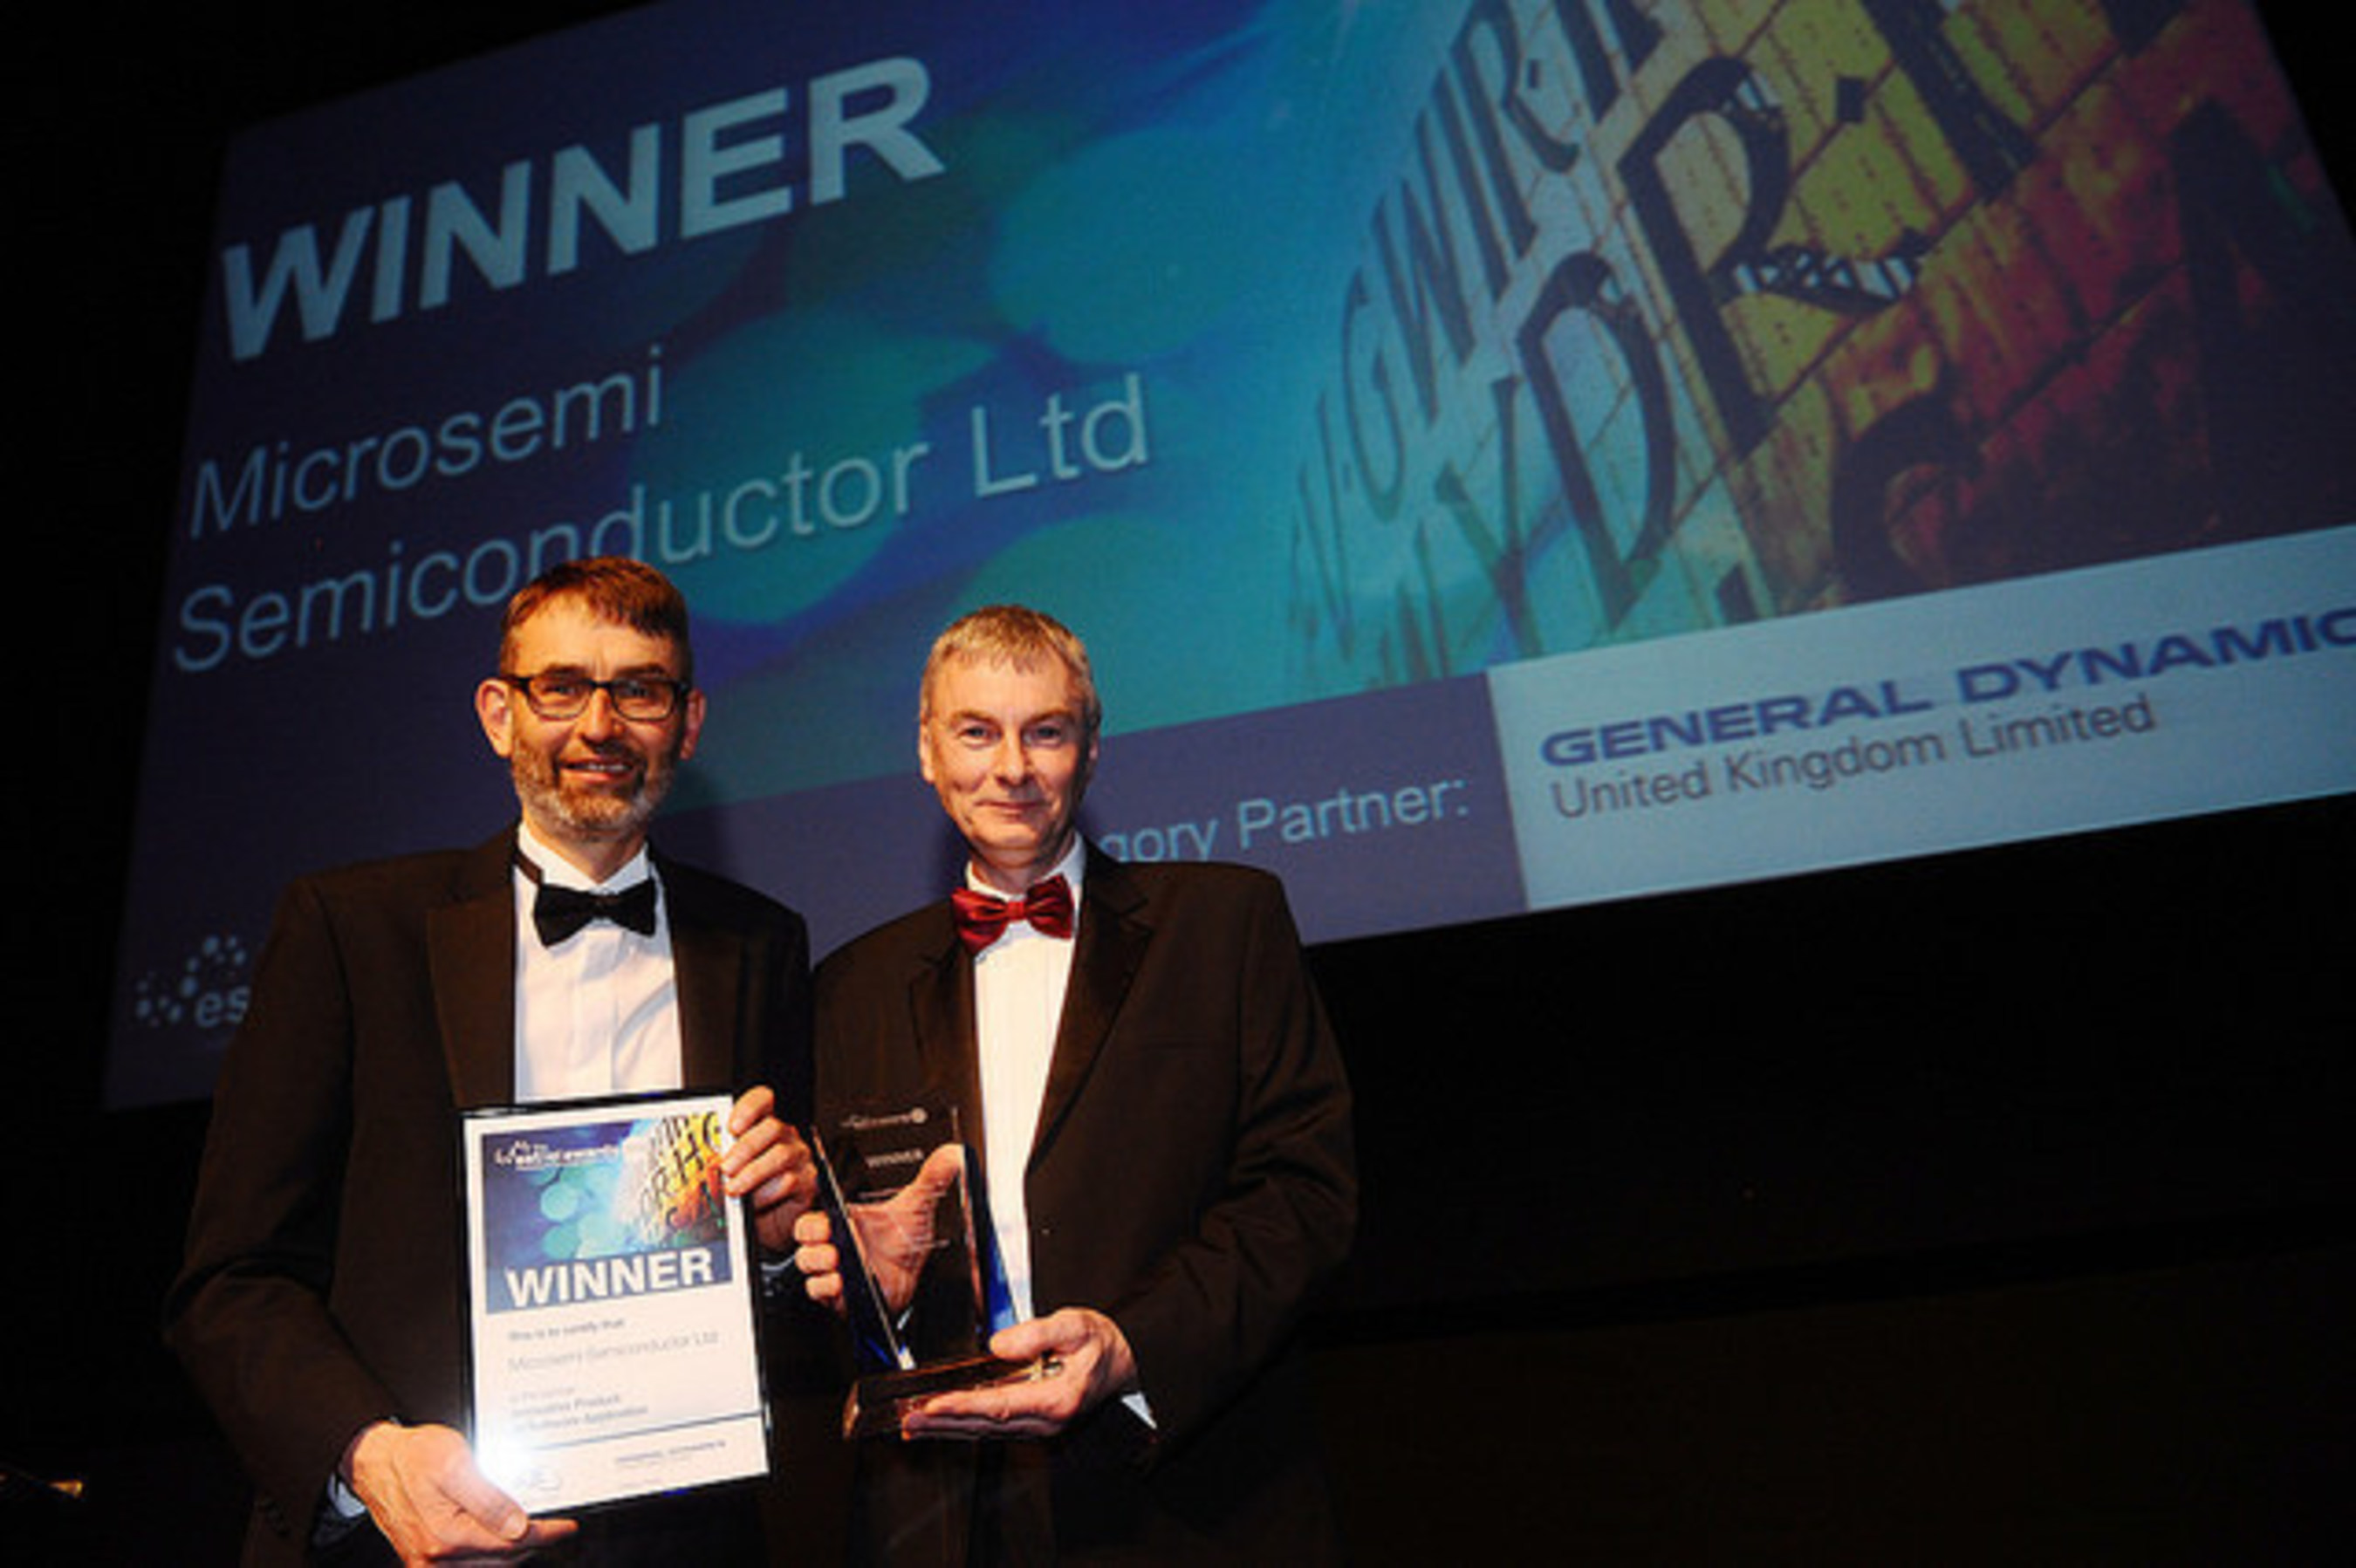 Piers Tremlett (left), senior engineer at Microsemi, accepted the Innovative Product or Software Application Award from Rob Rolley of General Dynamics (right) during the ESTnet Award ceremony in Wales